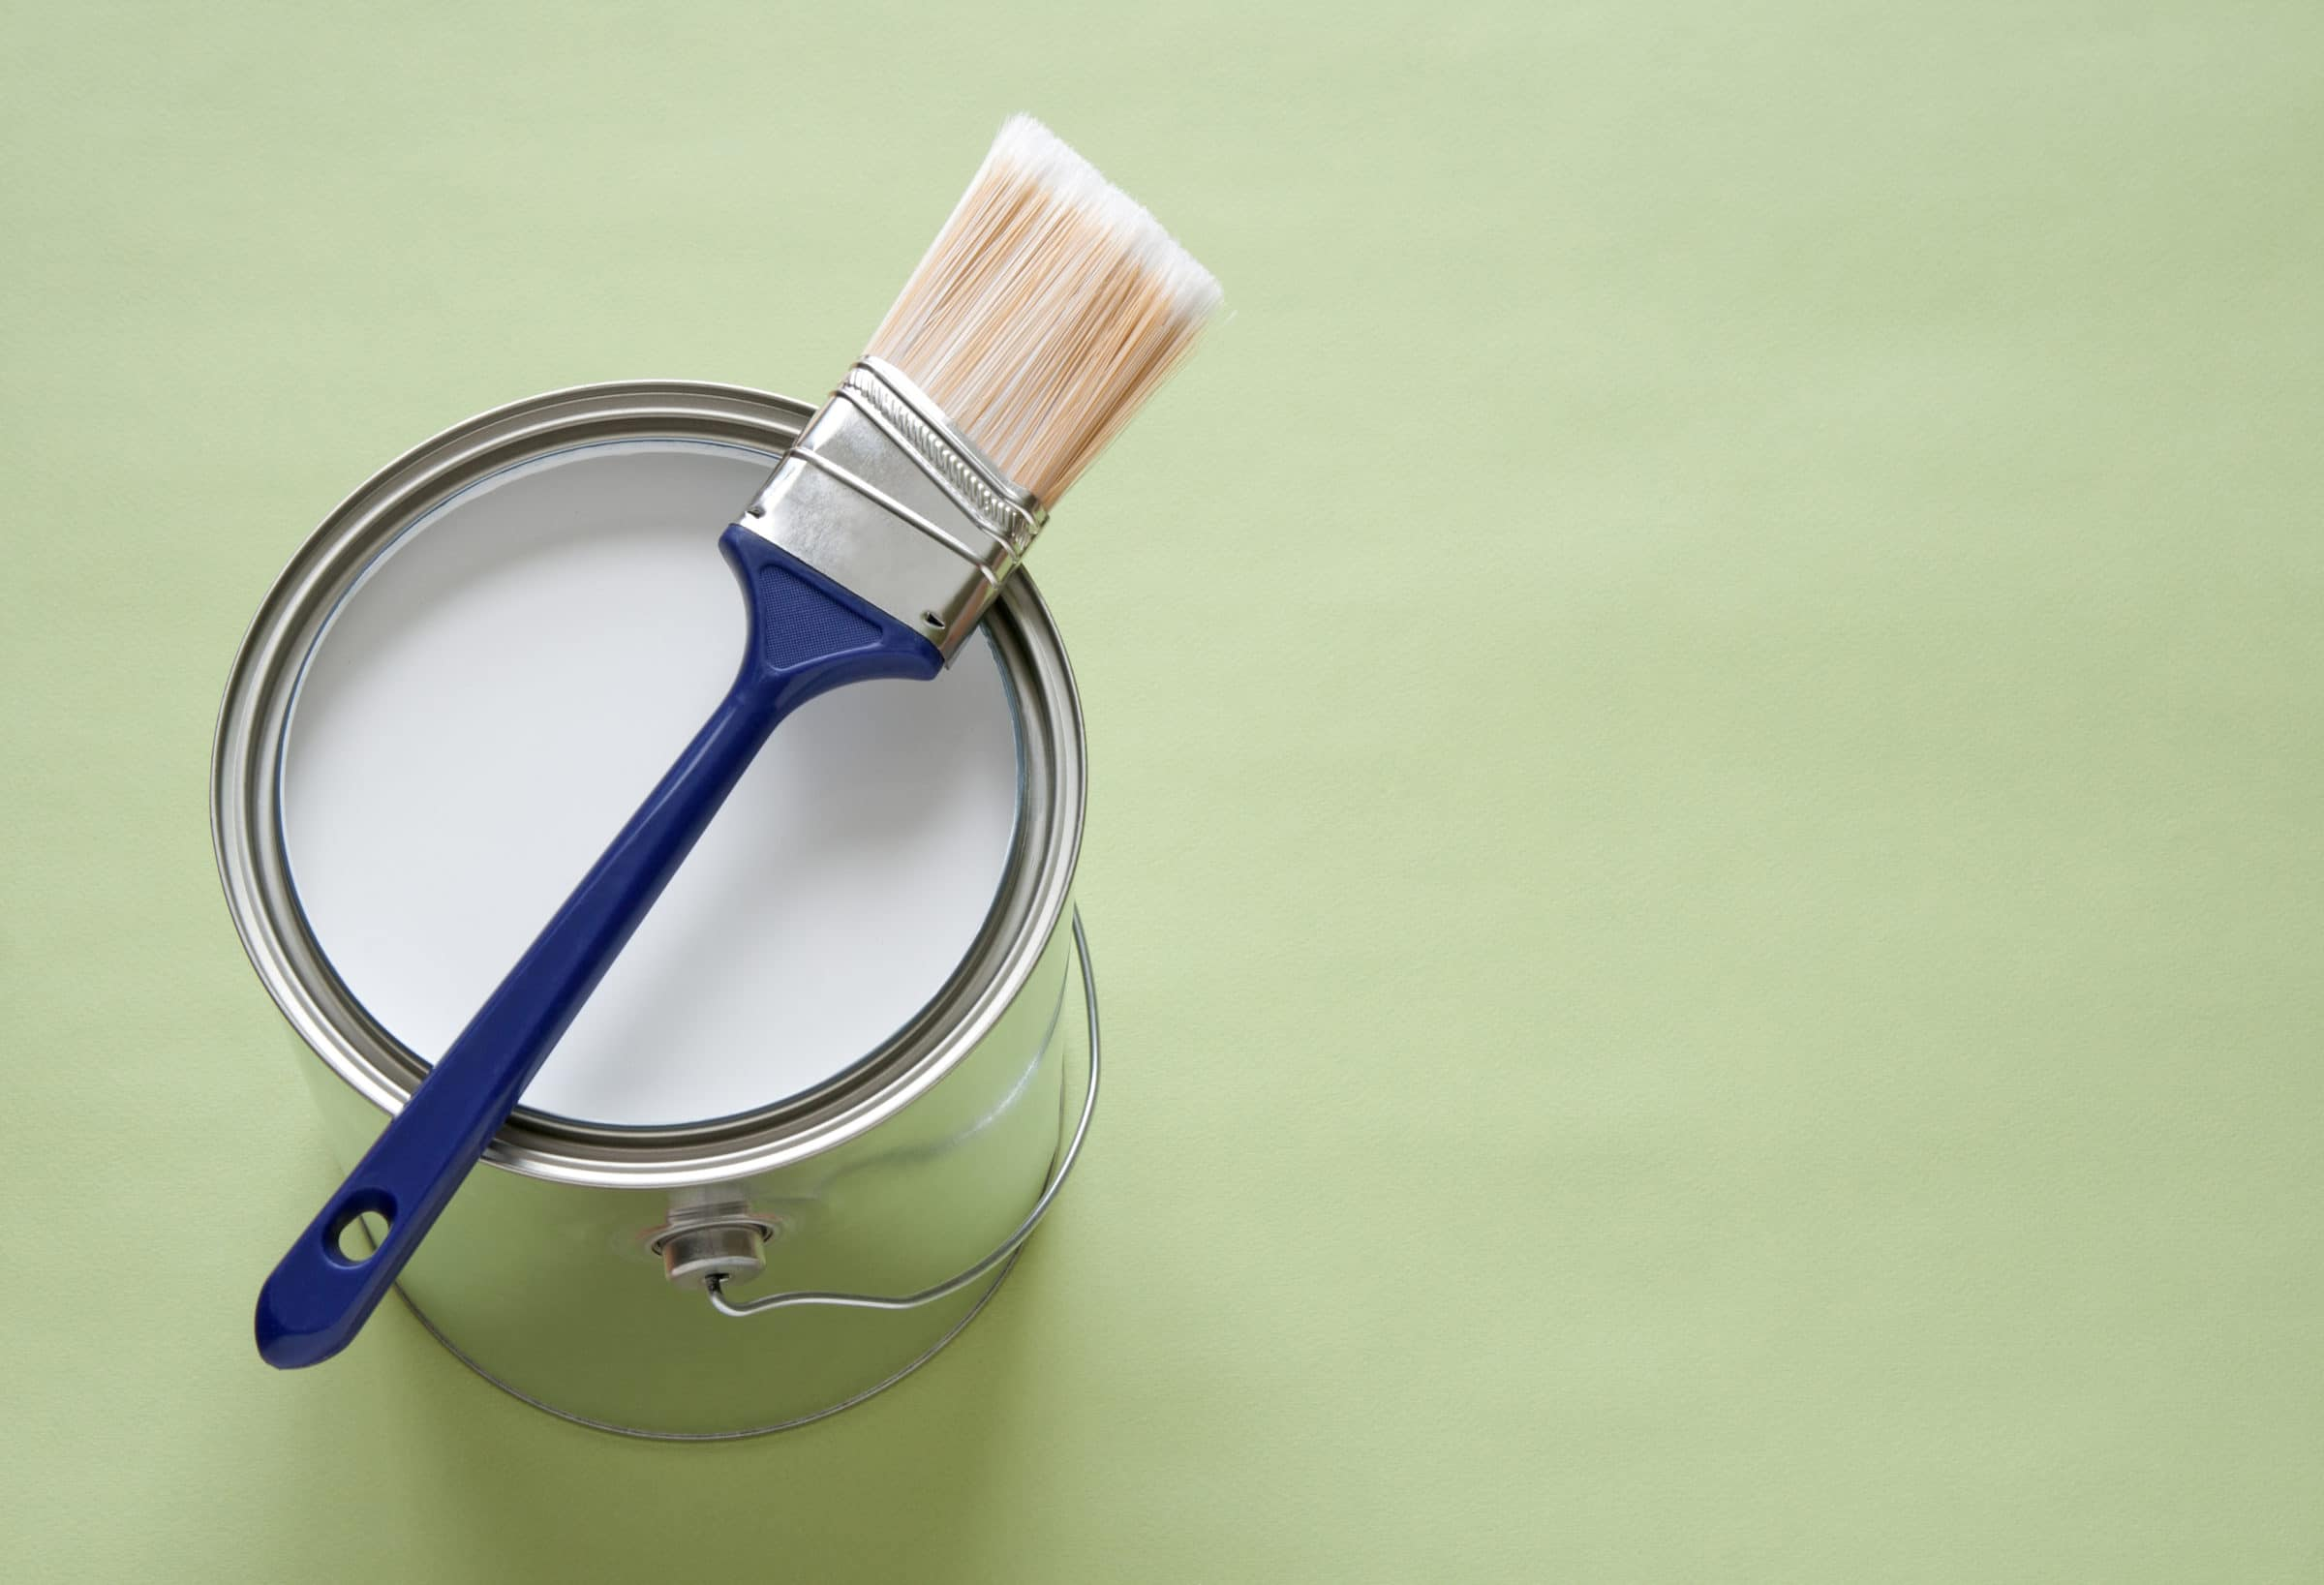 paint brush with a can of white paint